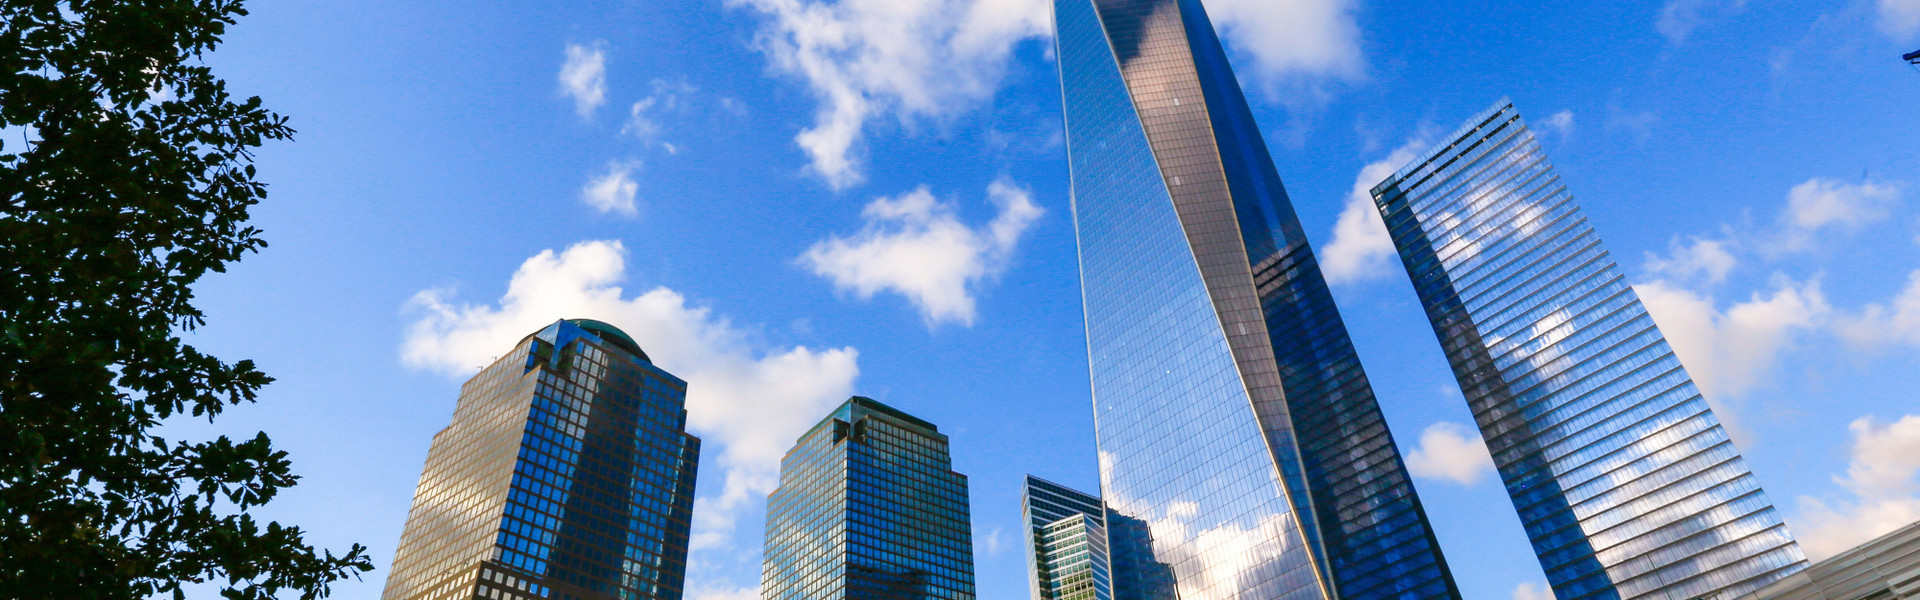 Offsite Meeting Space In NYC | New York City Skyline